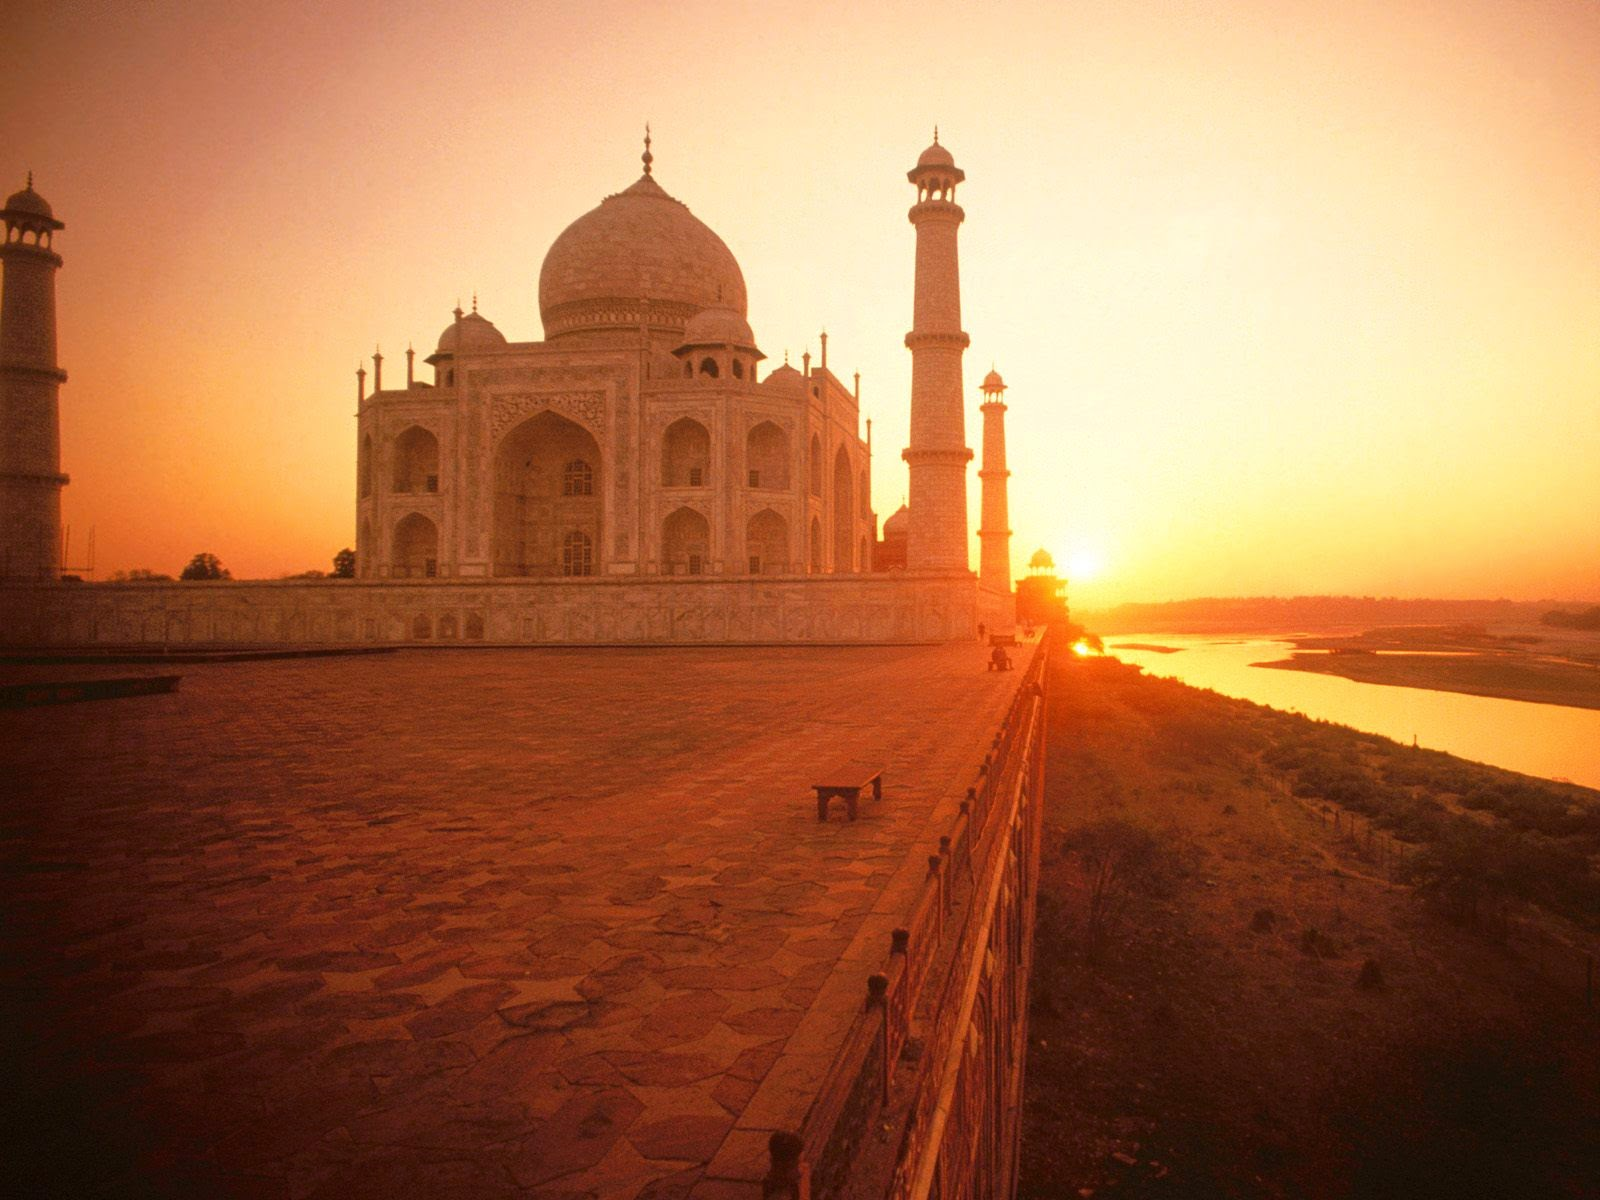 Taj Mahal in morning